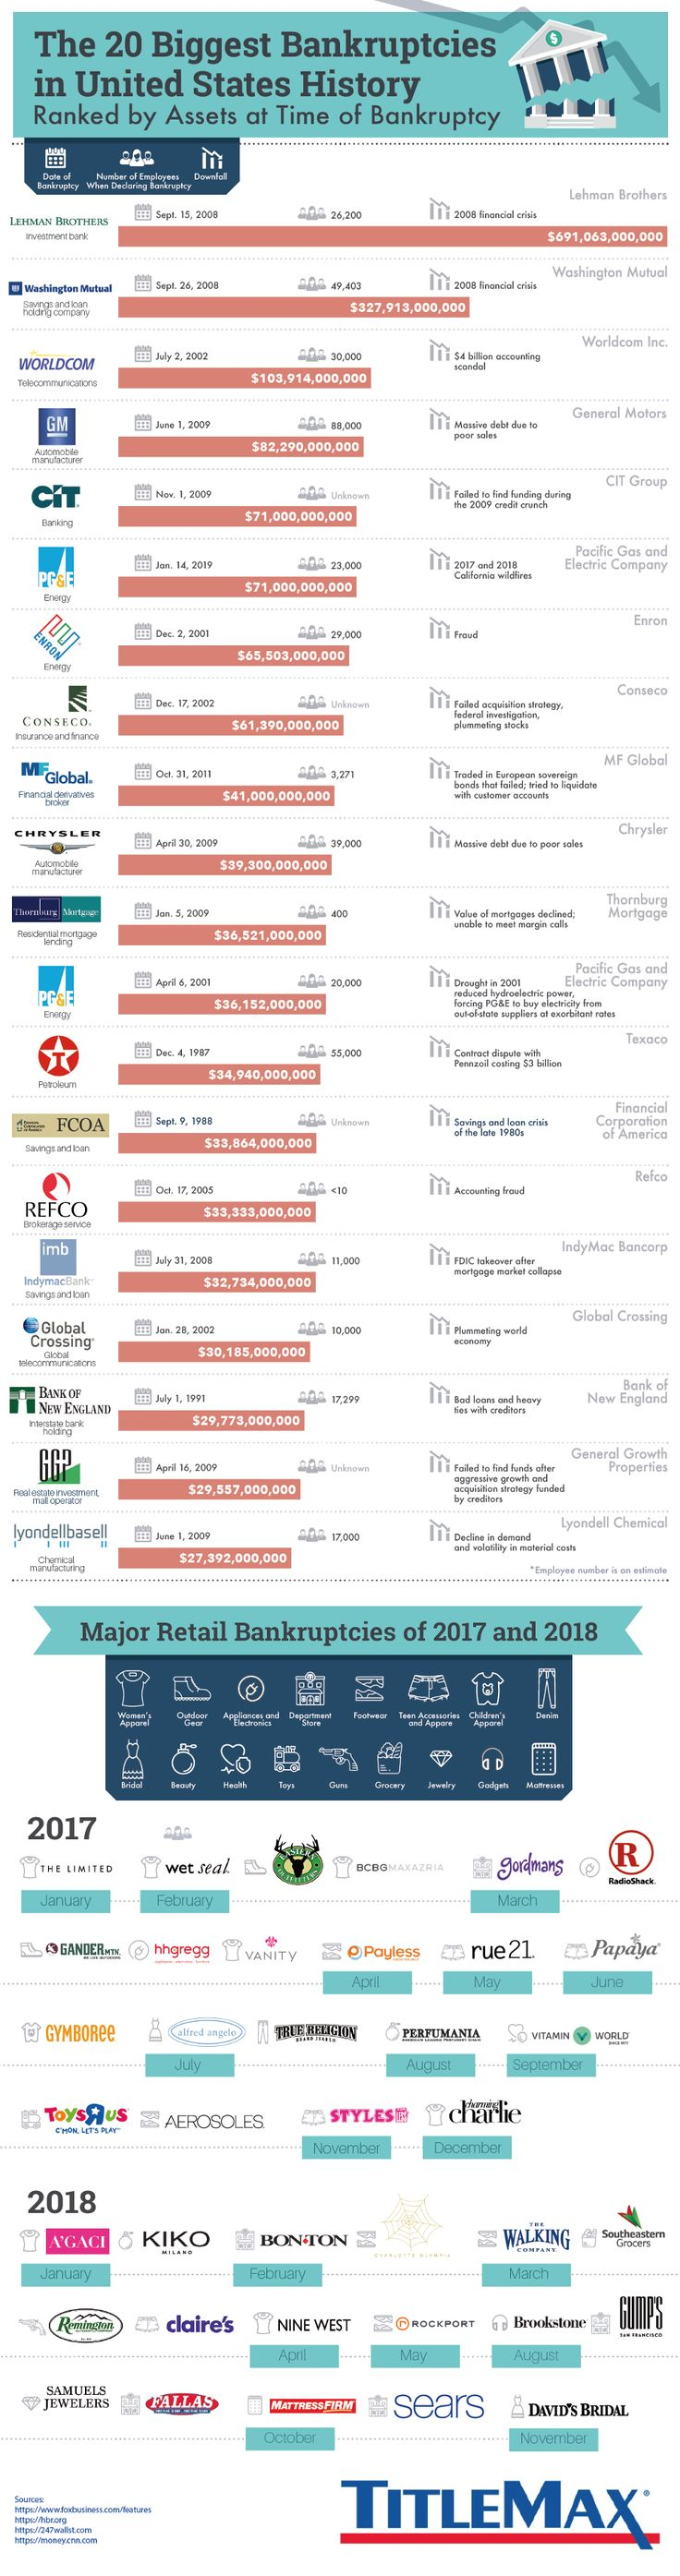 The 20 Biggest Bankruptcies in United States History